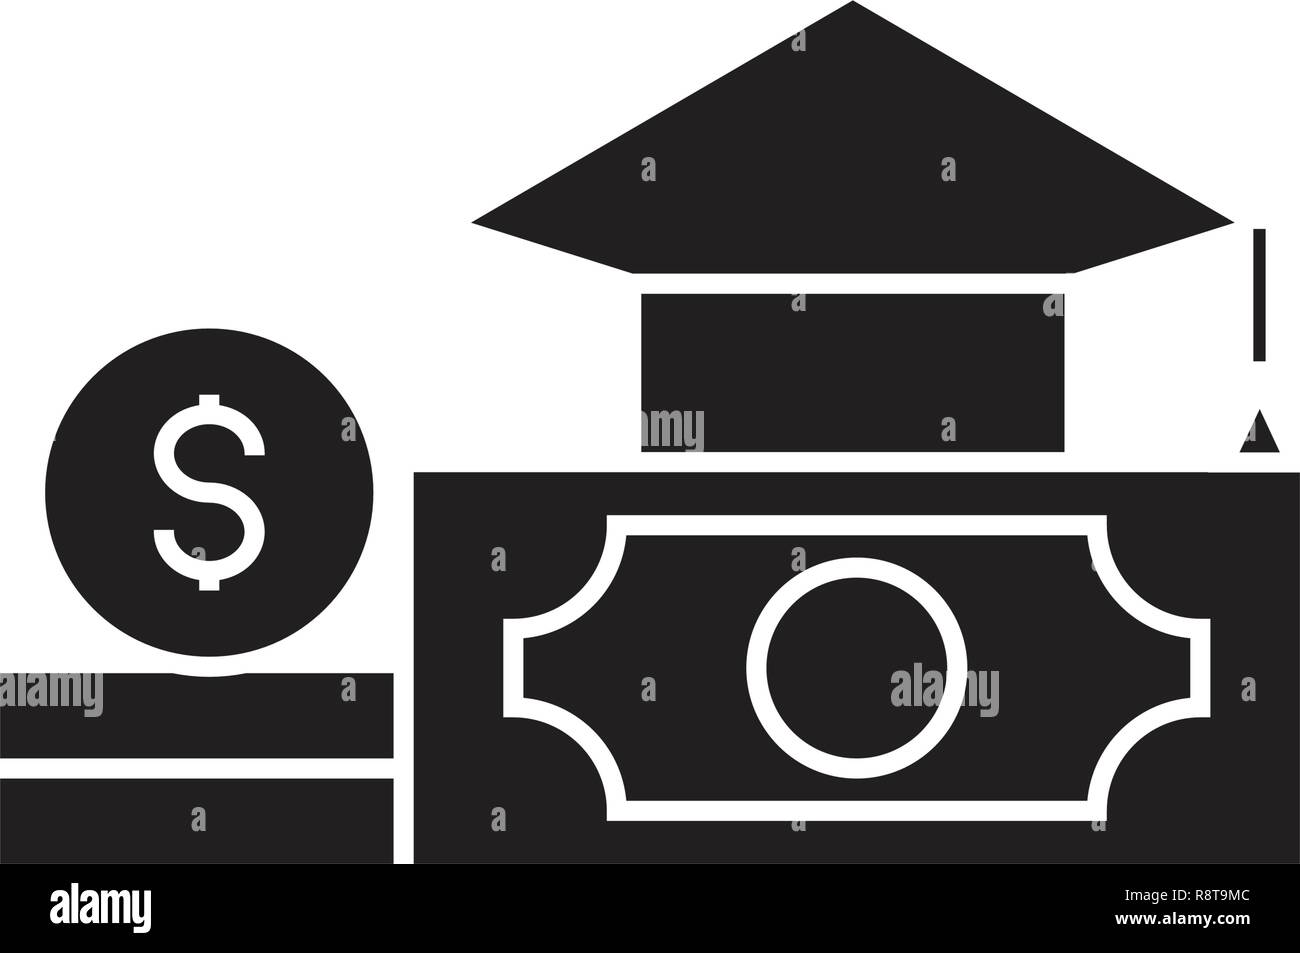 Paid tuition black vector concept icon. Paid tuition flat illustration, sign - Stock Vector